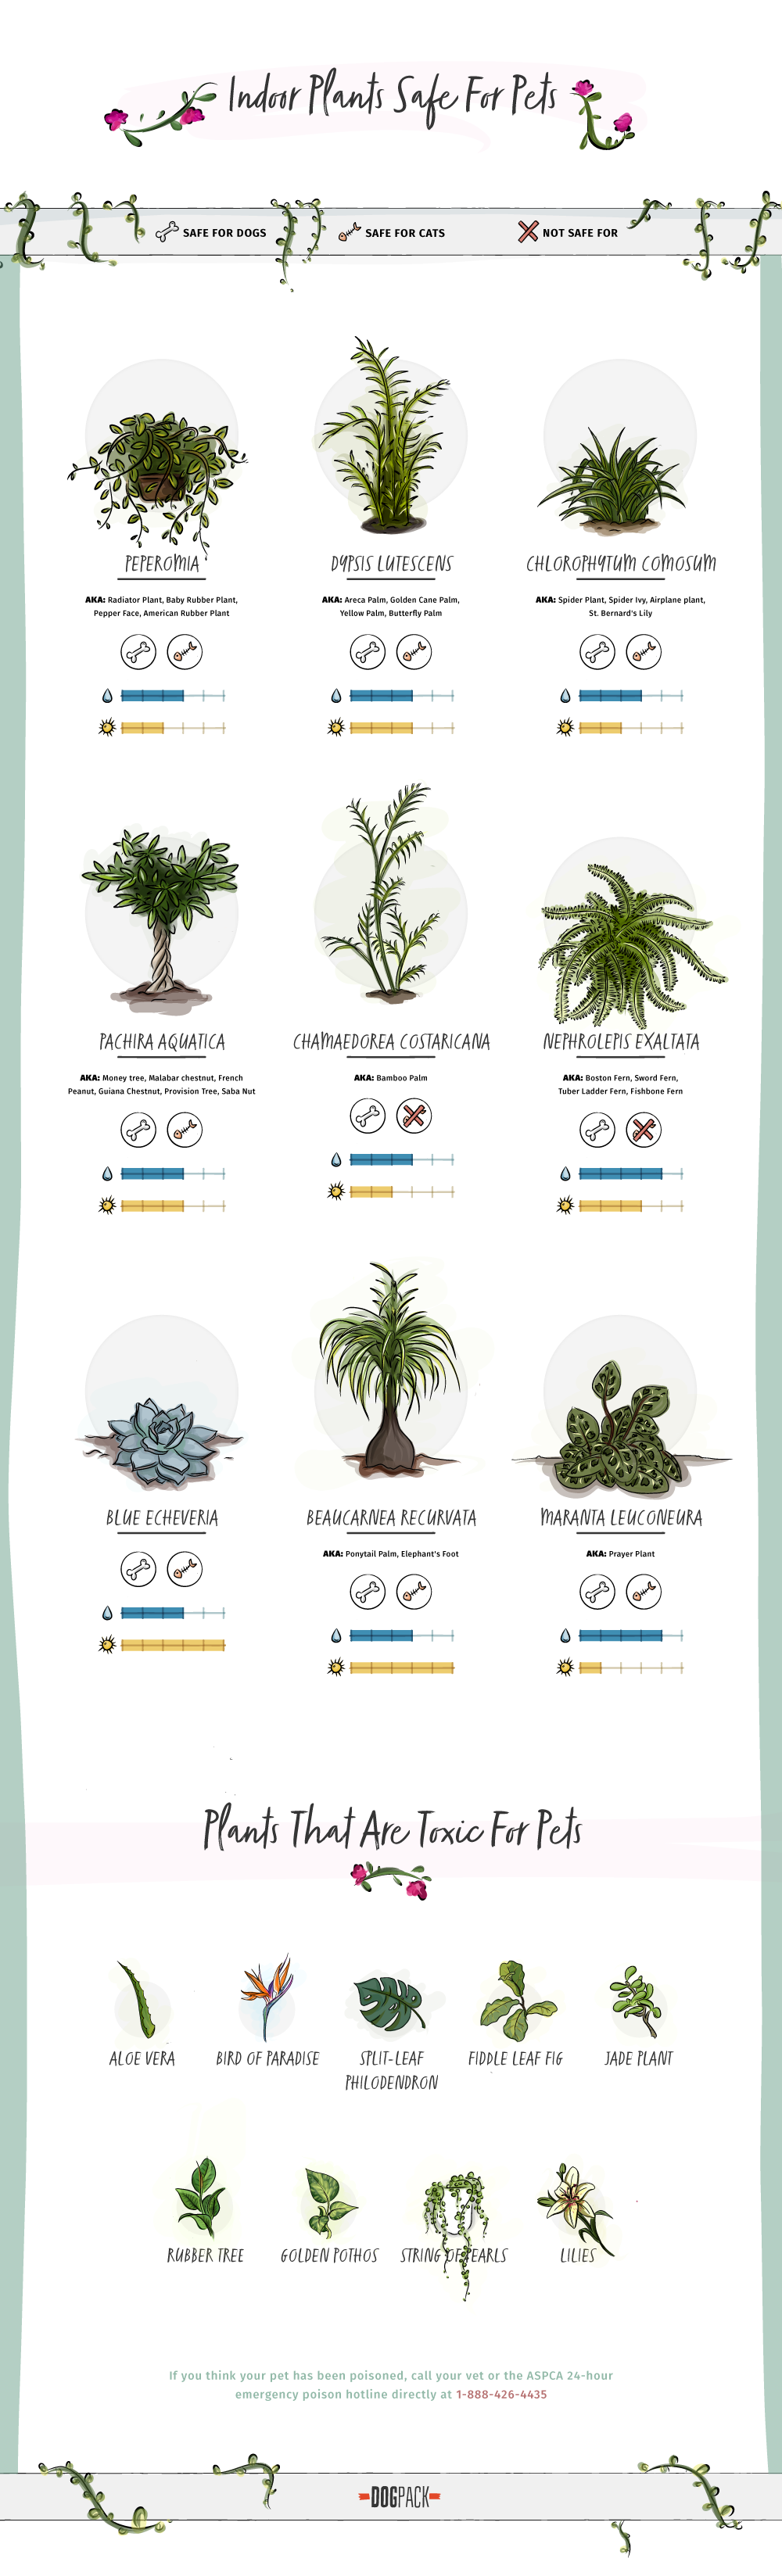 Plants That Are Poisonous For Dogs And Cats Plants Cat Plants Indoor Plants